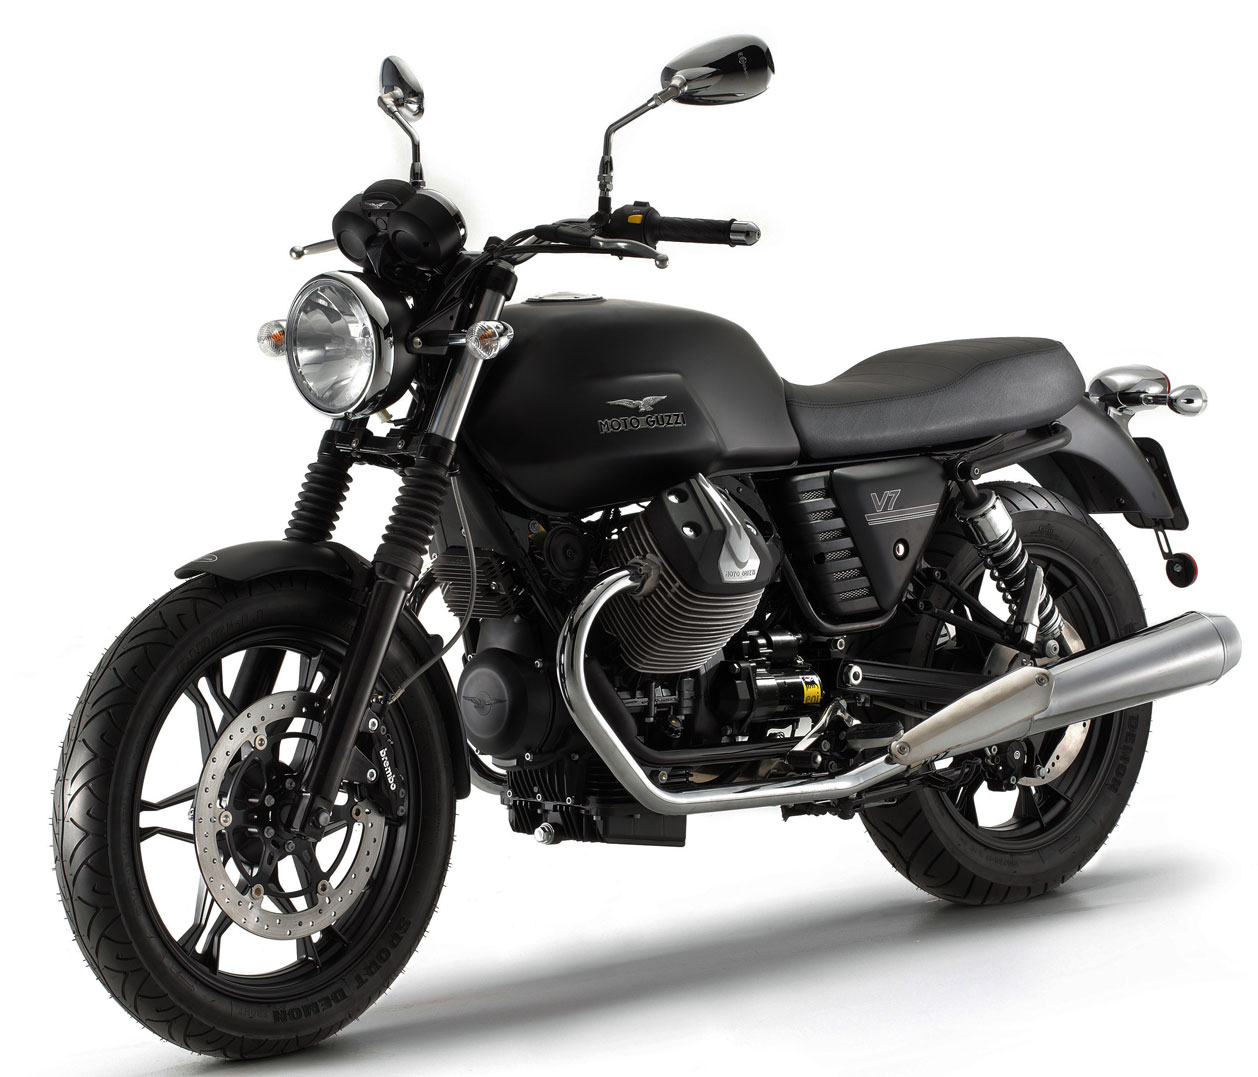 2012 moto guzzi v7 review motorcycles specification. Black Bedroom Furniture Sets. Home Design Ideas